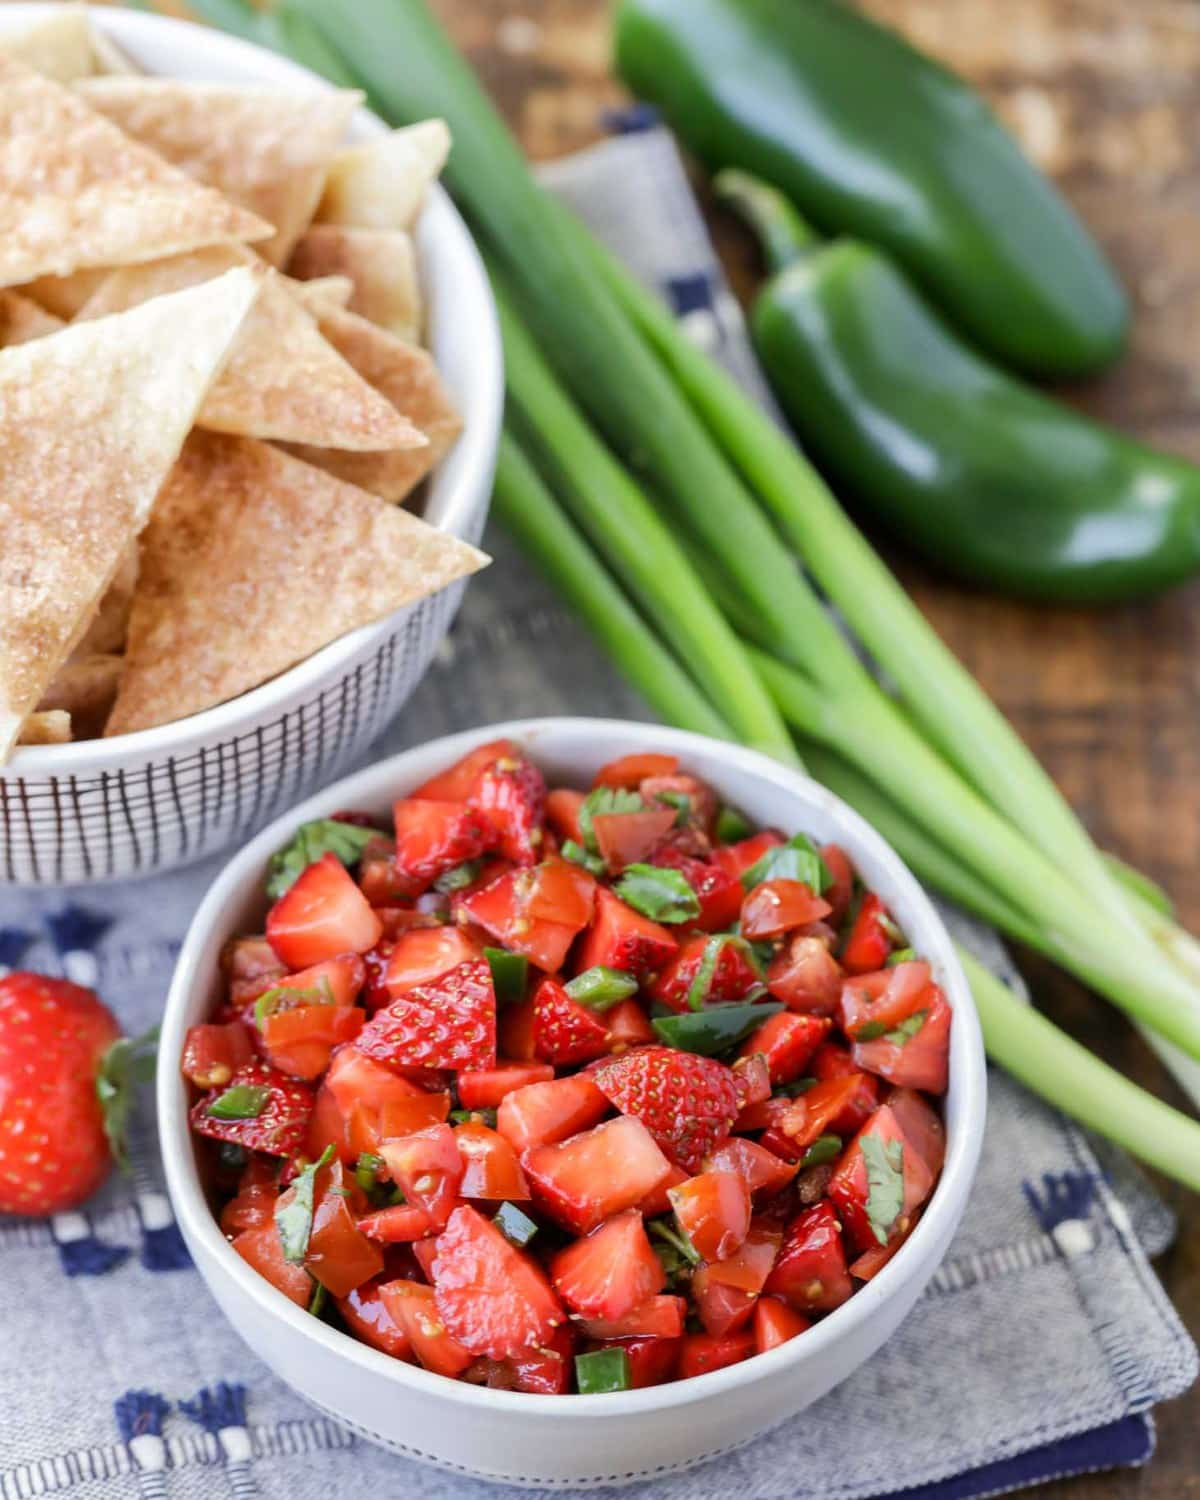 Strawberry Jalapeño Salsa served with Cinnamon Chips